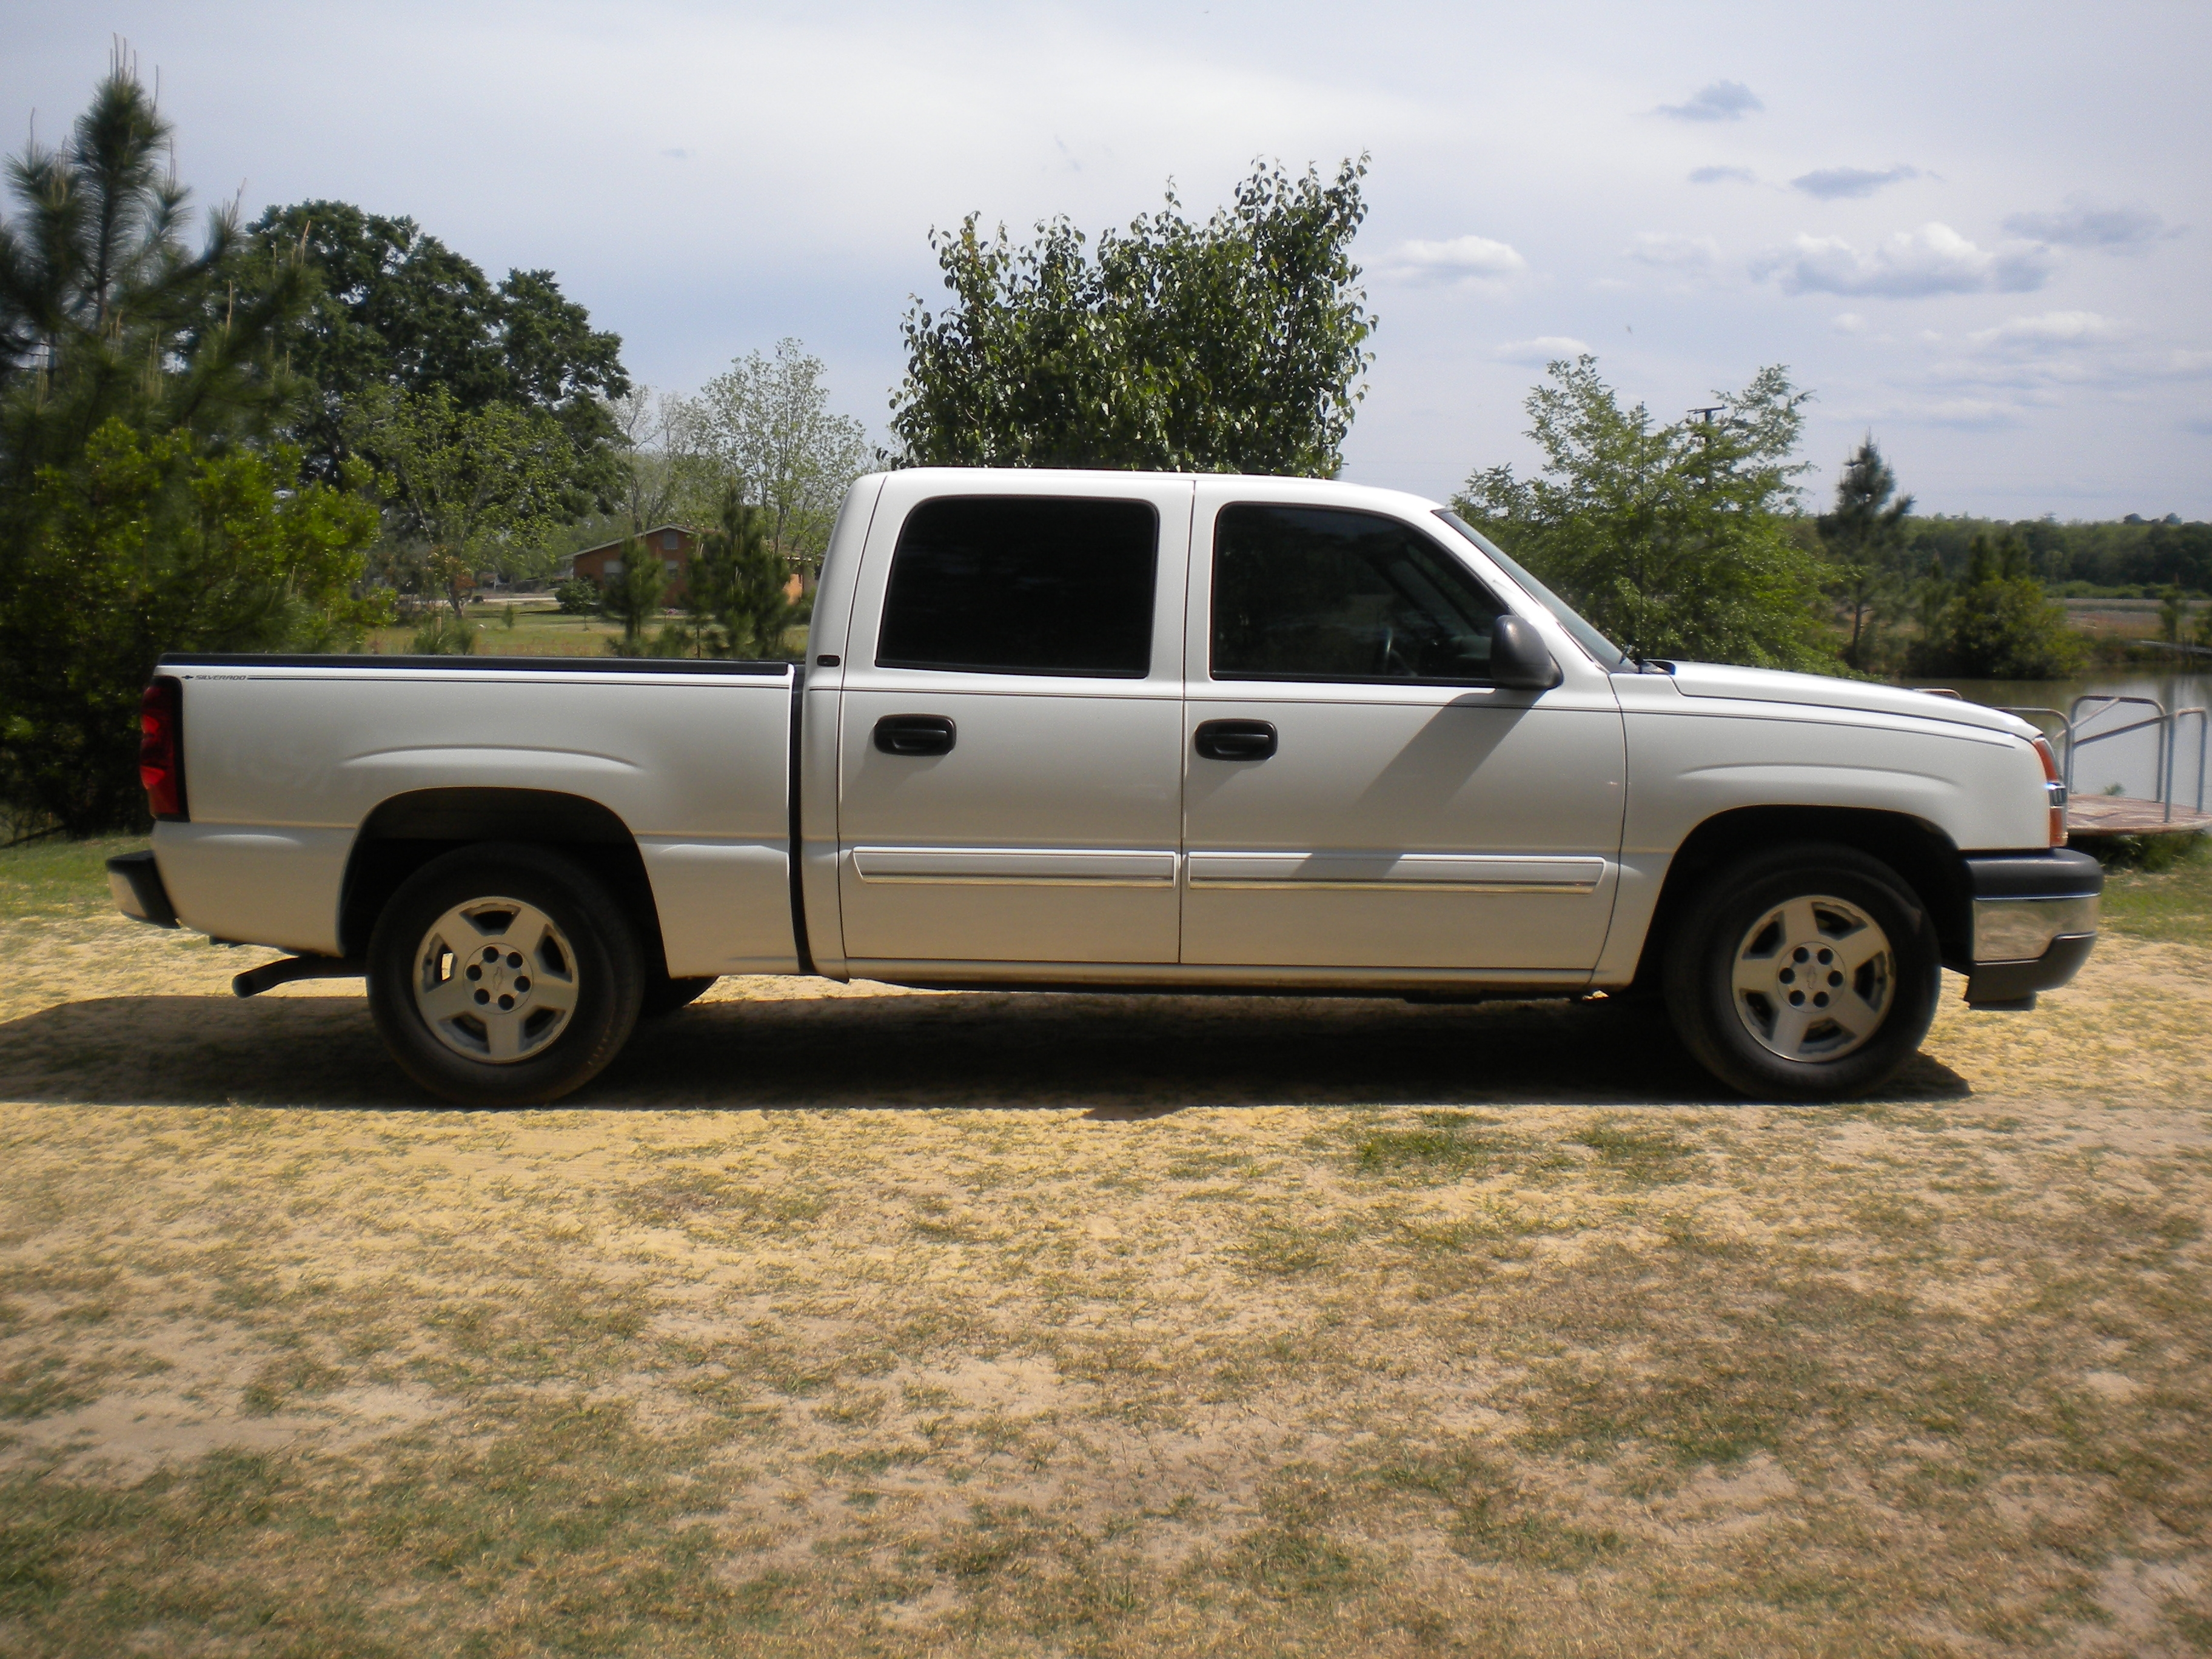 05chevsilverado 2005 chevrolet silverado 1500 crew cab specs photos modification info at cardomain. Black Bedroom Furniture Sets. Home Design Ideas